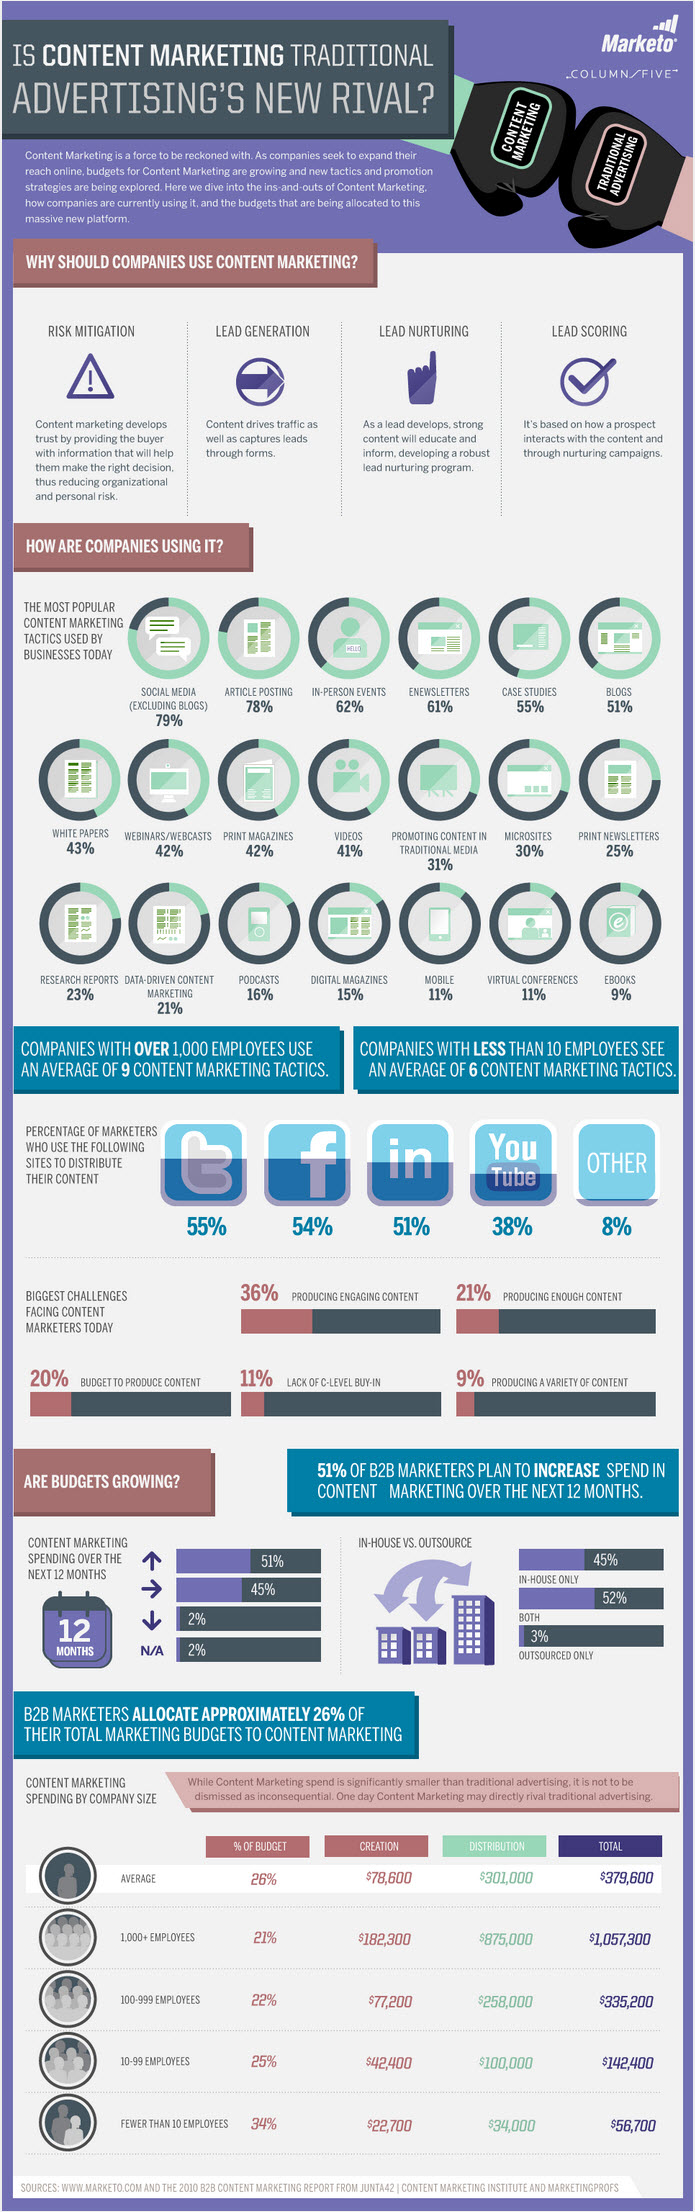 Content-Marketing-Vs-Traditional-Advertising-infographic